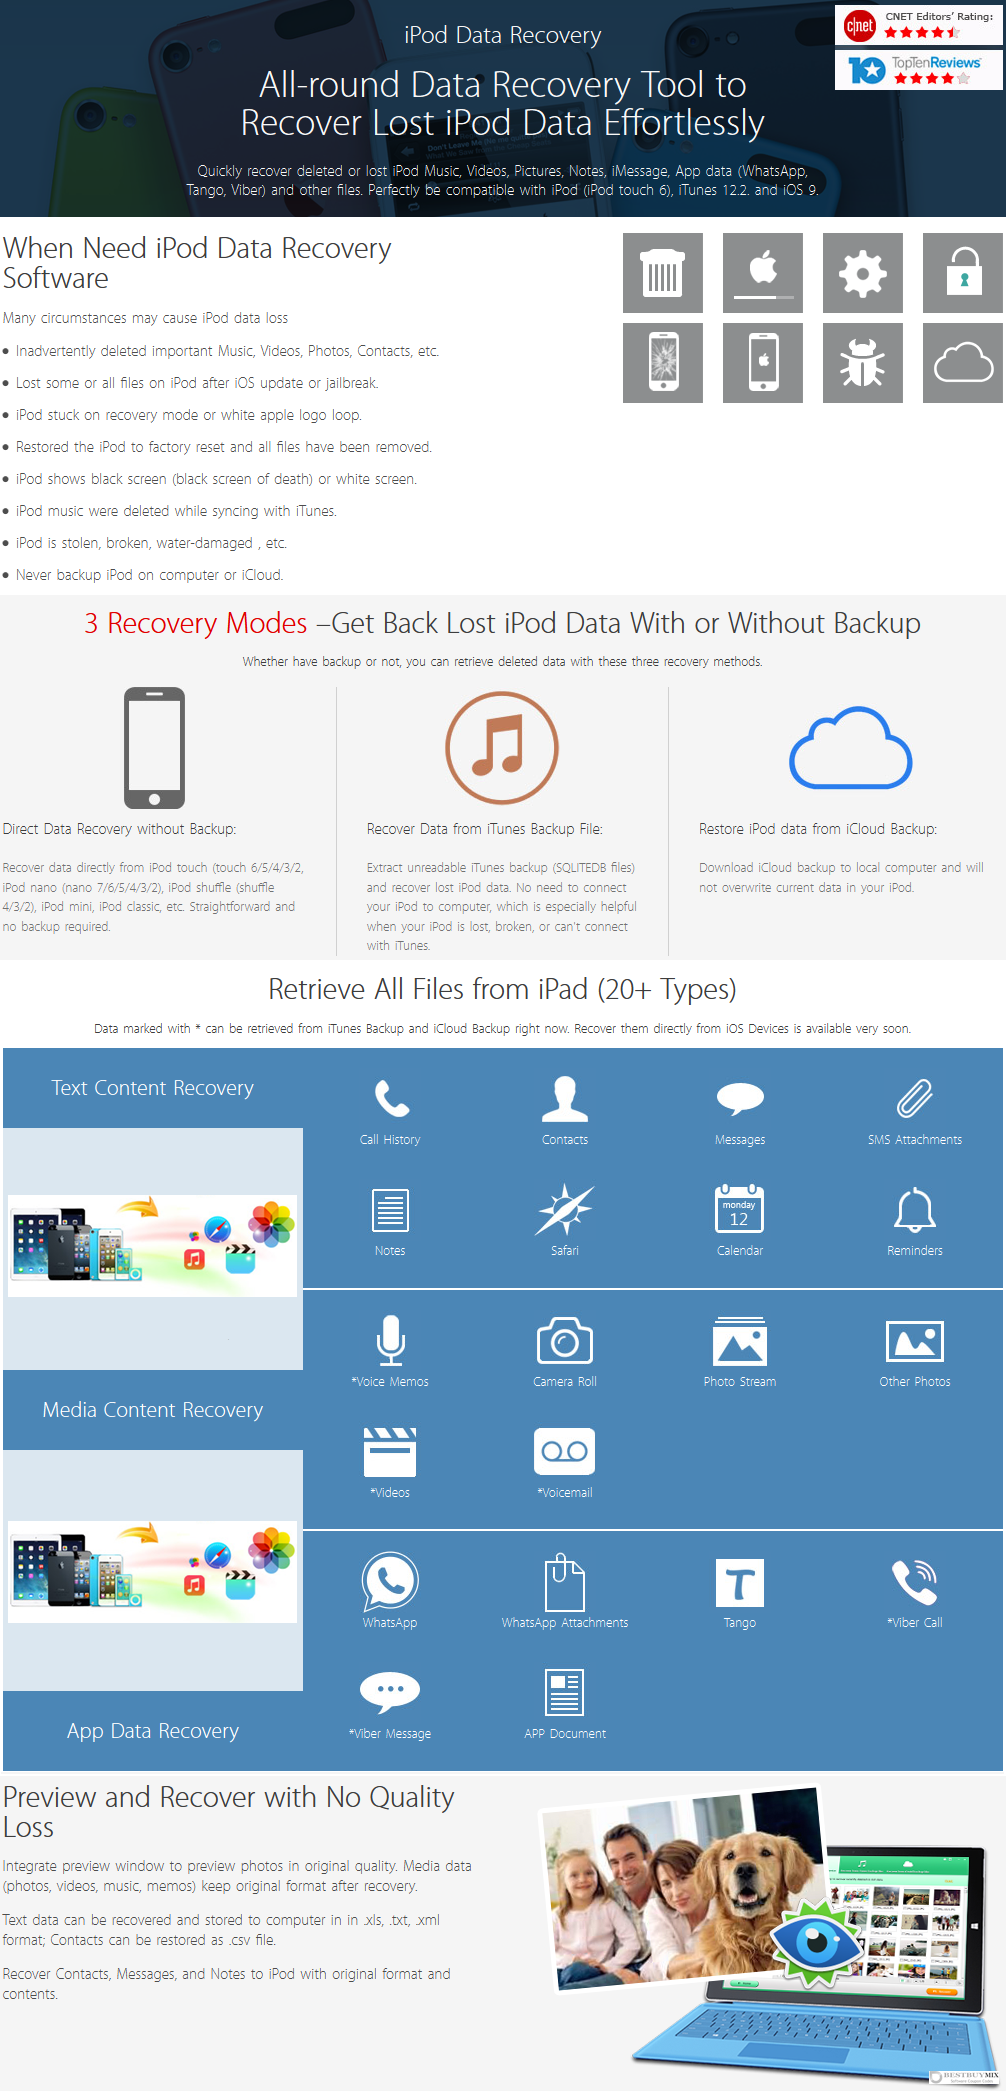 Tenorshare iPod Data Recovery Discount Coupon Code